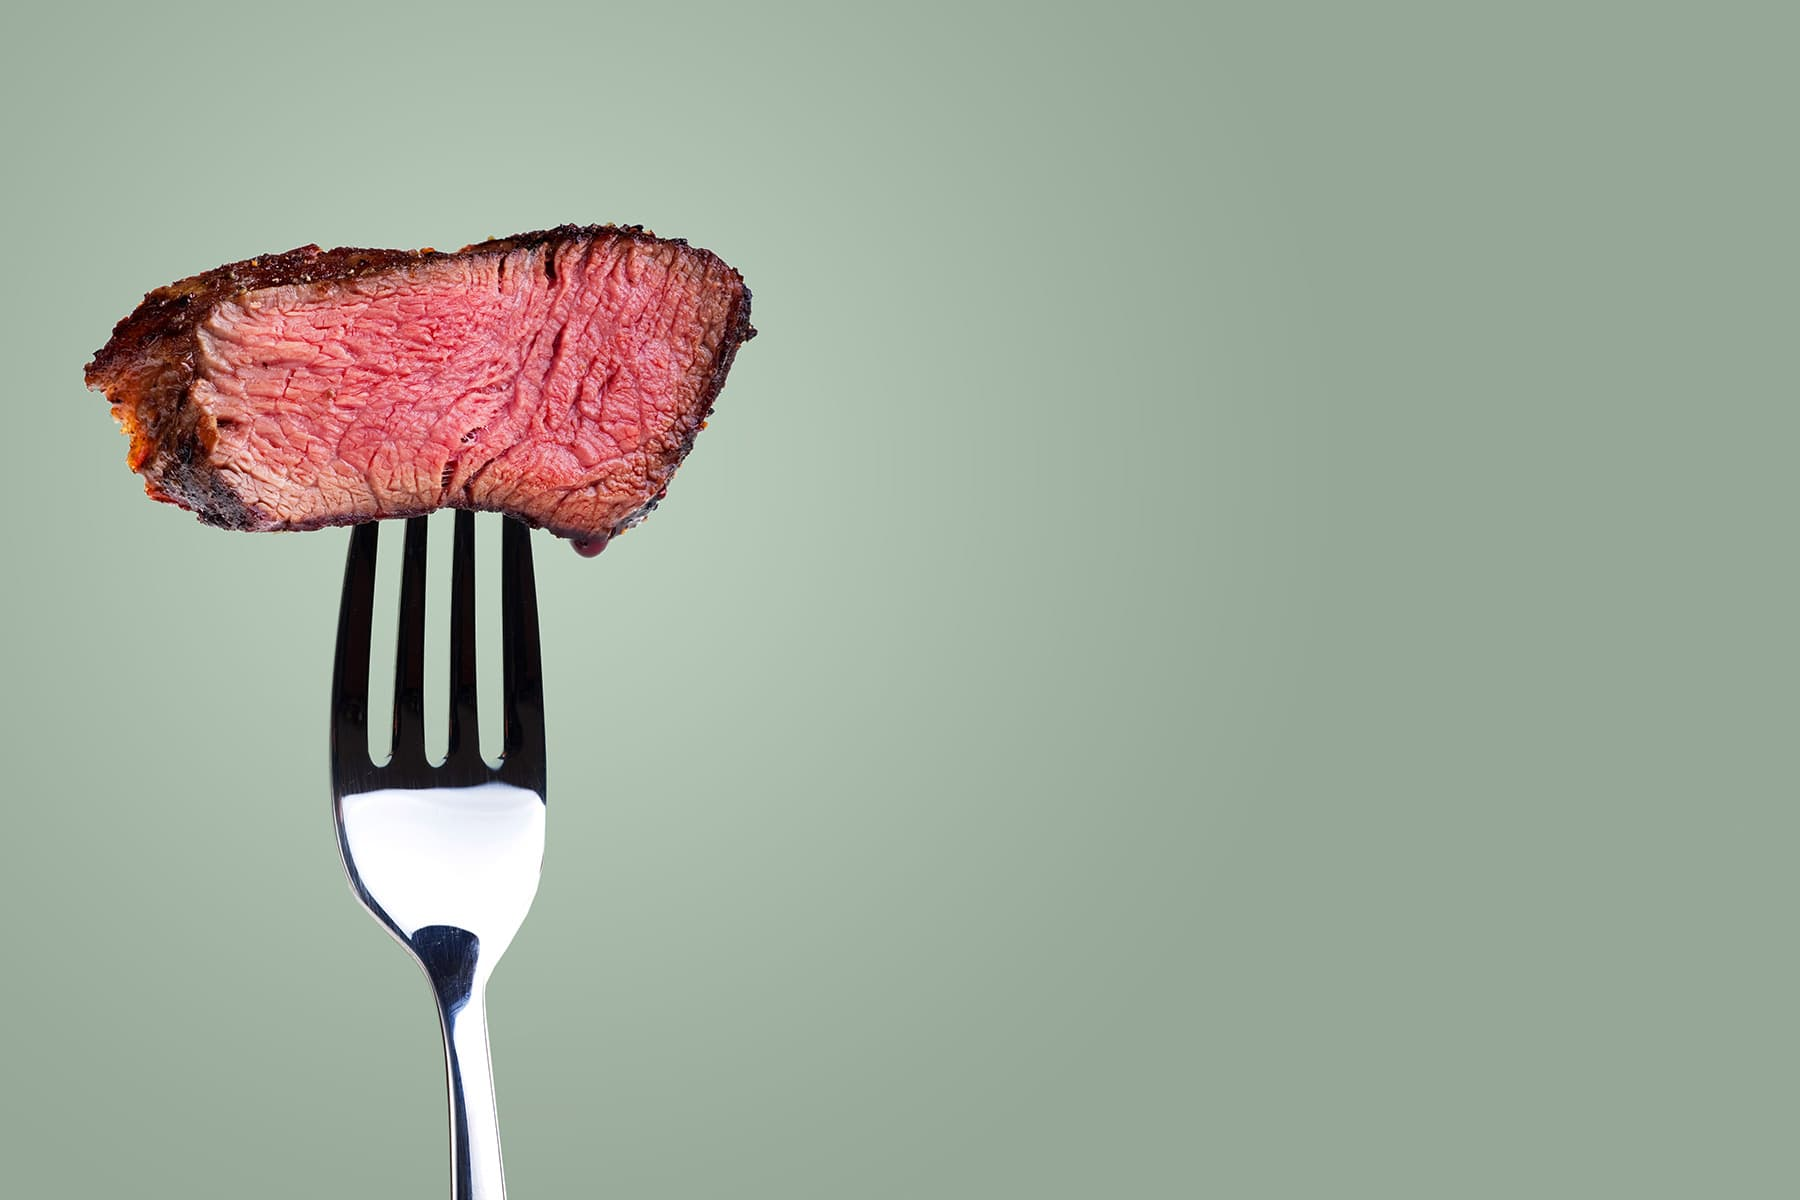 Eating red meat is not bad for you, controversial new study says